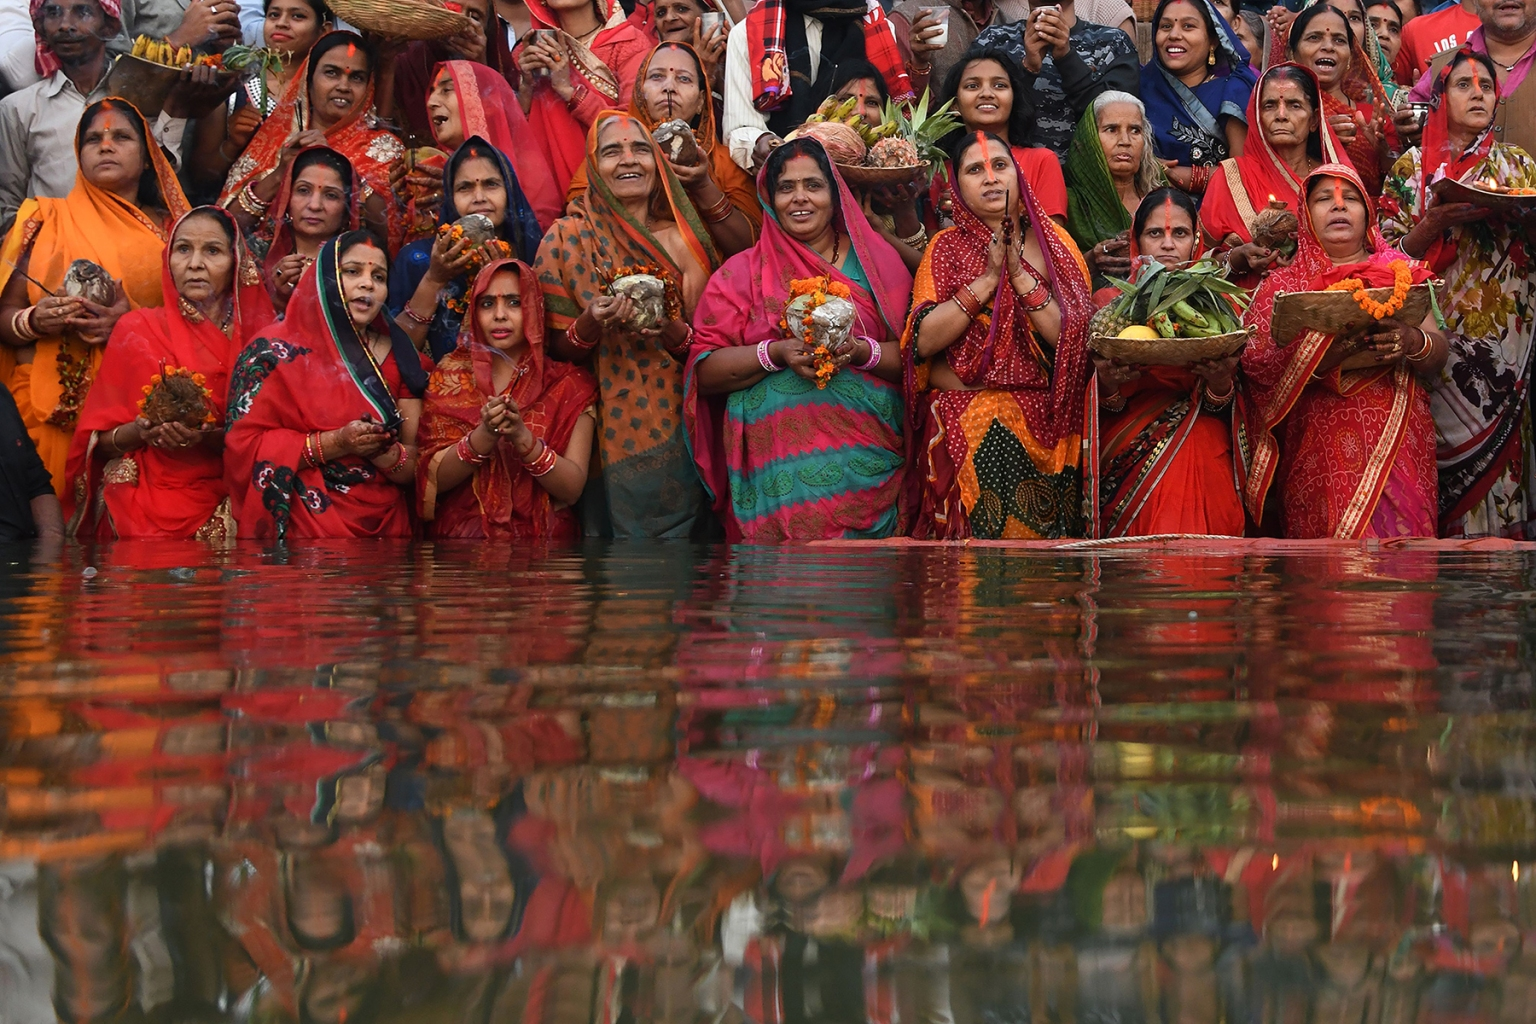 Indian devotees take part in a ritual worshipping the sun god during the Chhath Festival on the banks of the holy river Ganges in Varanasi on Nov. 14. The festival is observed in parts of India and Nepal when devotees undergo a fast and offer water and milk to the sun god at dawn and dusk on the banks of rivers or small ponds, praying for the longivety and health of their spouses. DOMINIQUE FAGET/AFP/Getty Images